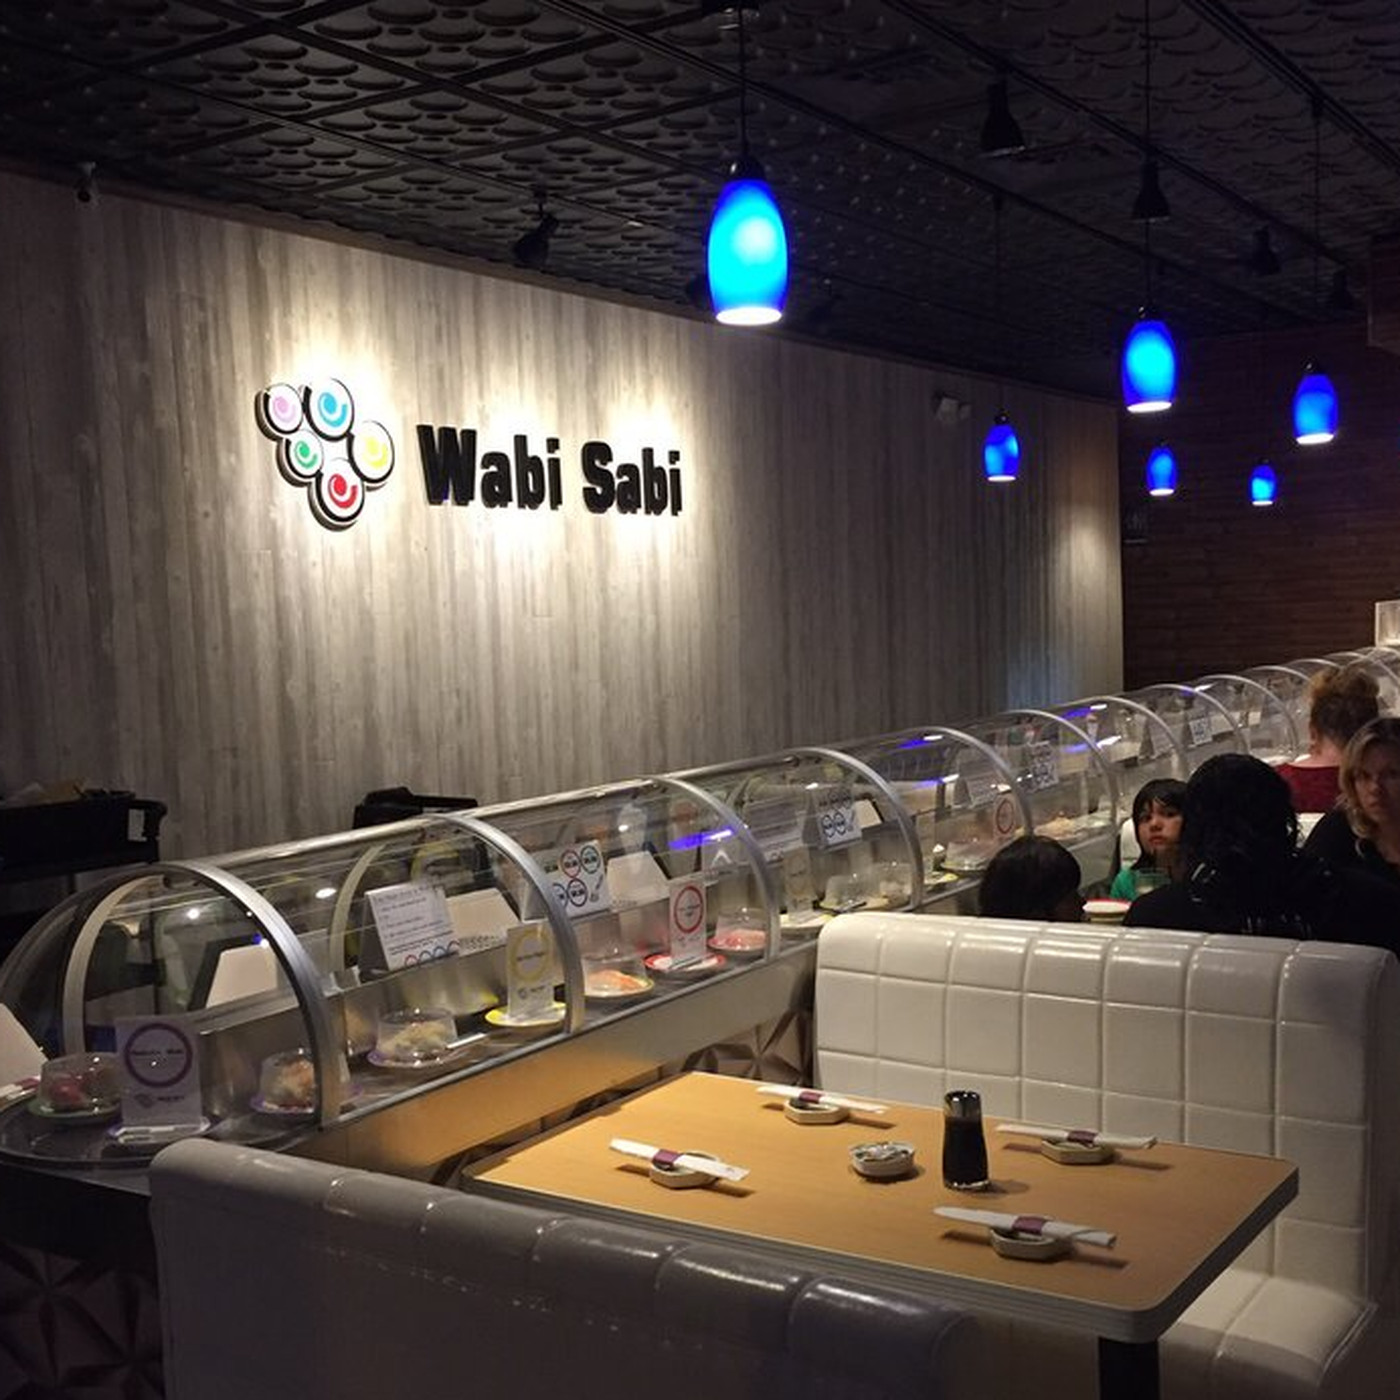 Chicago S Only Rotary Sushi Restaurant Opens In Uptown Eater Chicago 1059 w belmont ave, chicago, illinois 60657, united states. rotary sushi restaurant opens in uptown